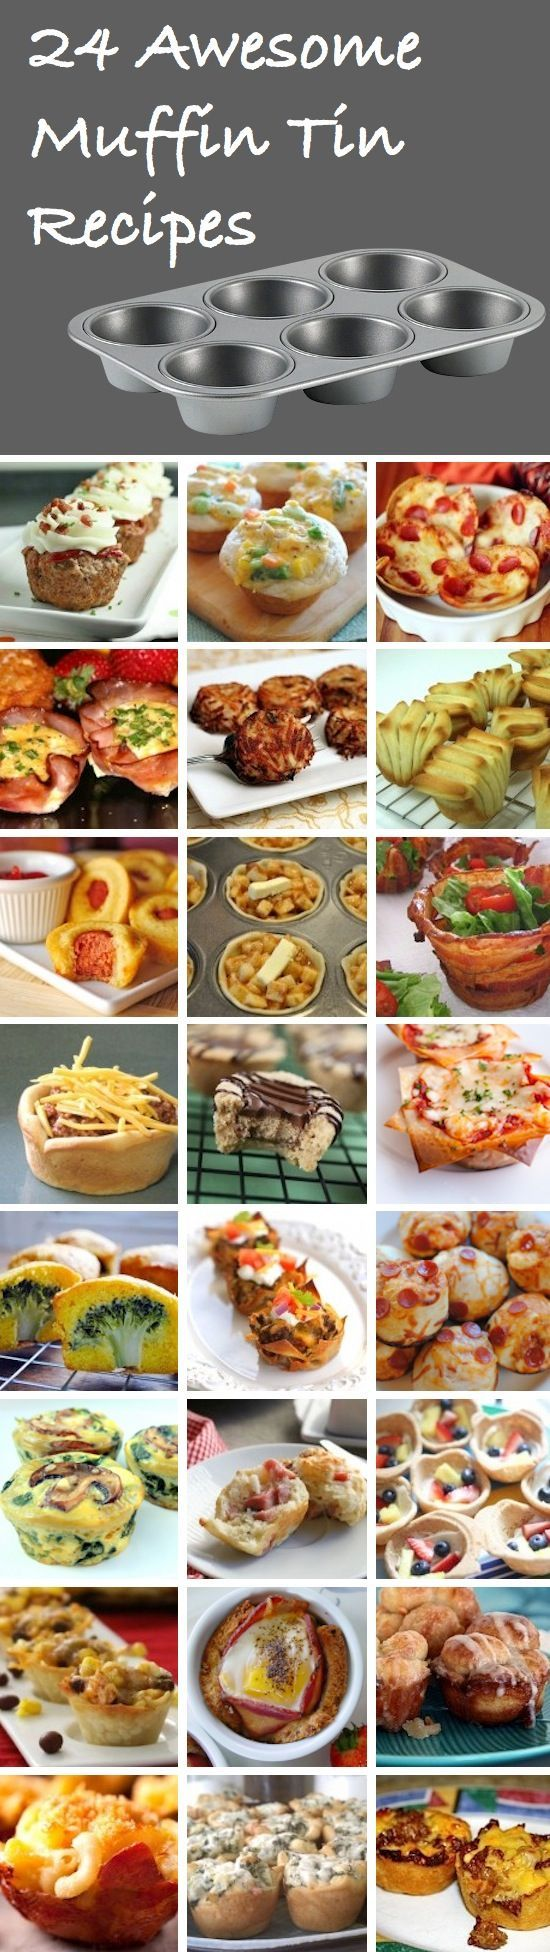 24 Awesome Muffin Tin Recipes... Try to make them healthy